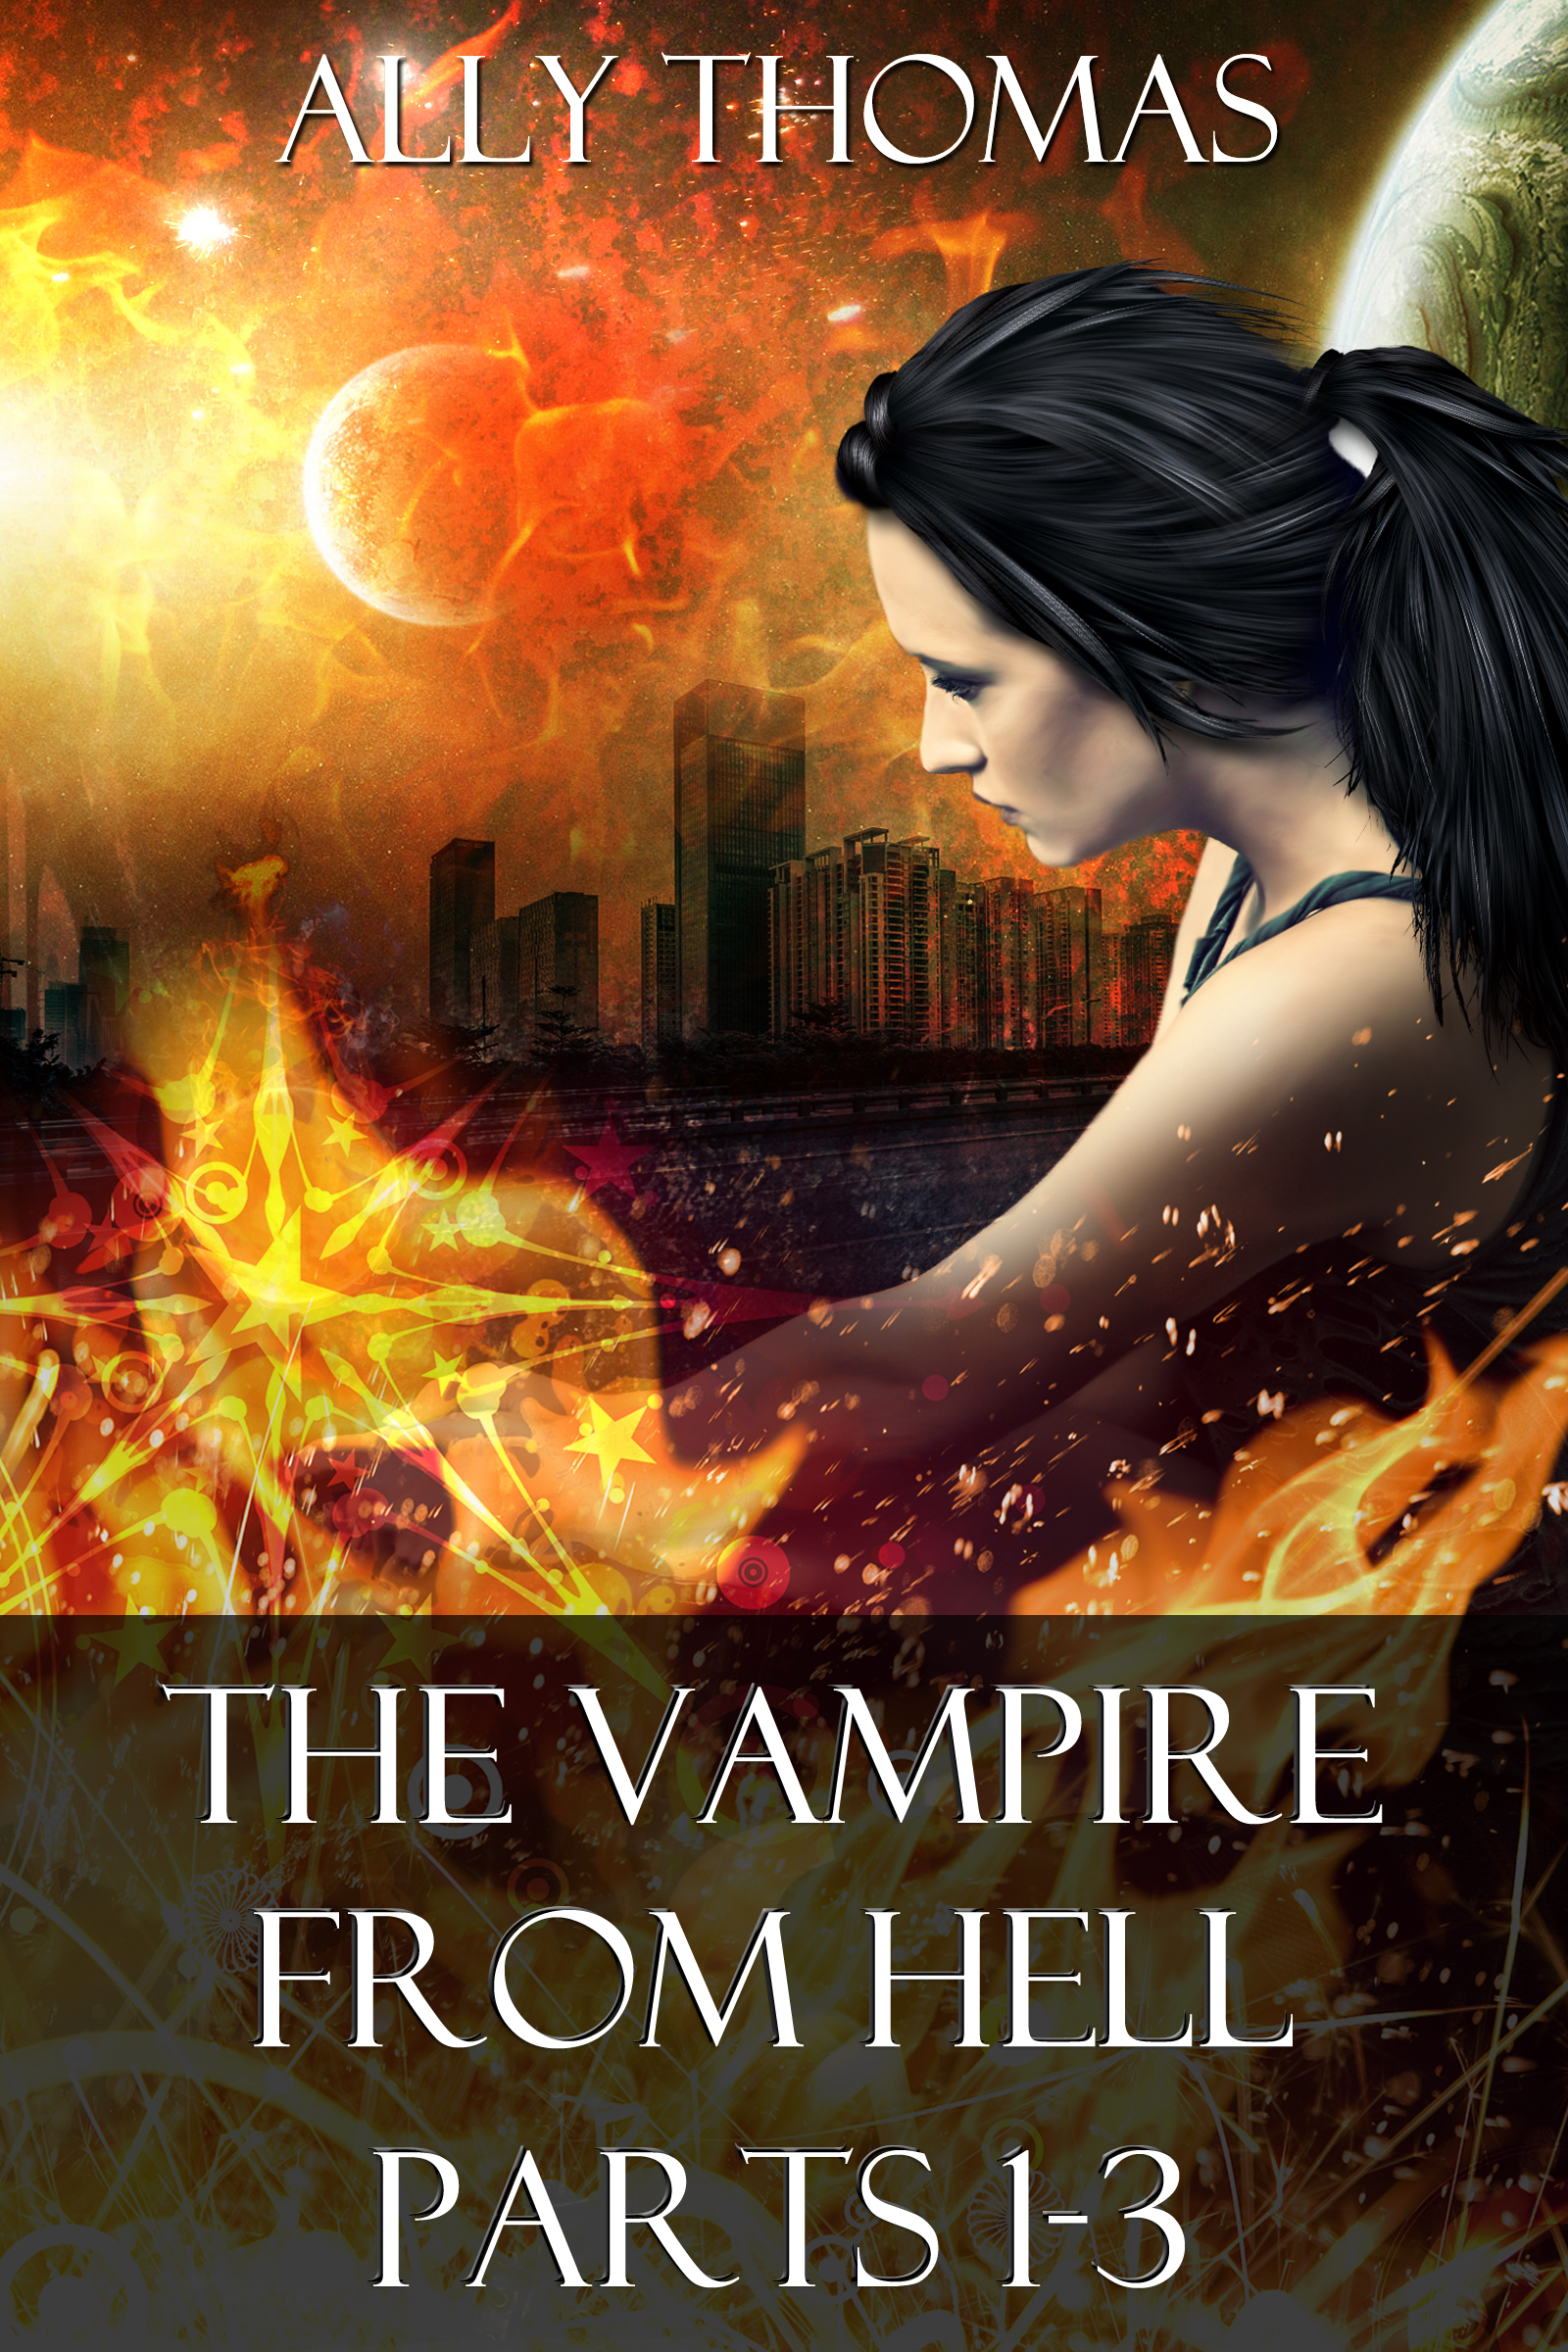 Start Ally's Vampire from Hell series for Free. Click the image to find out more at www.allythomas.com.